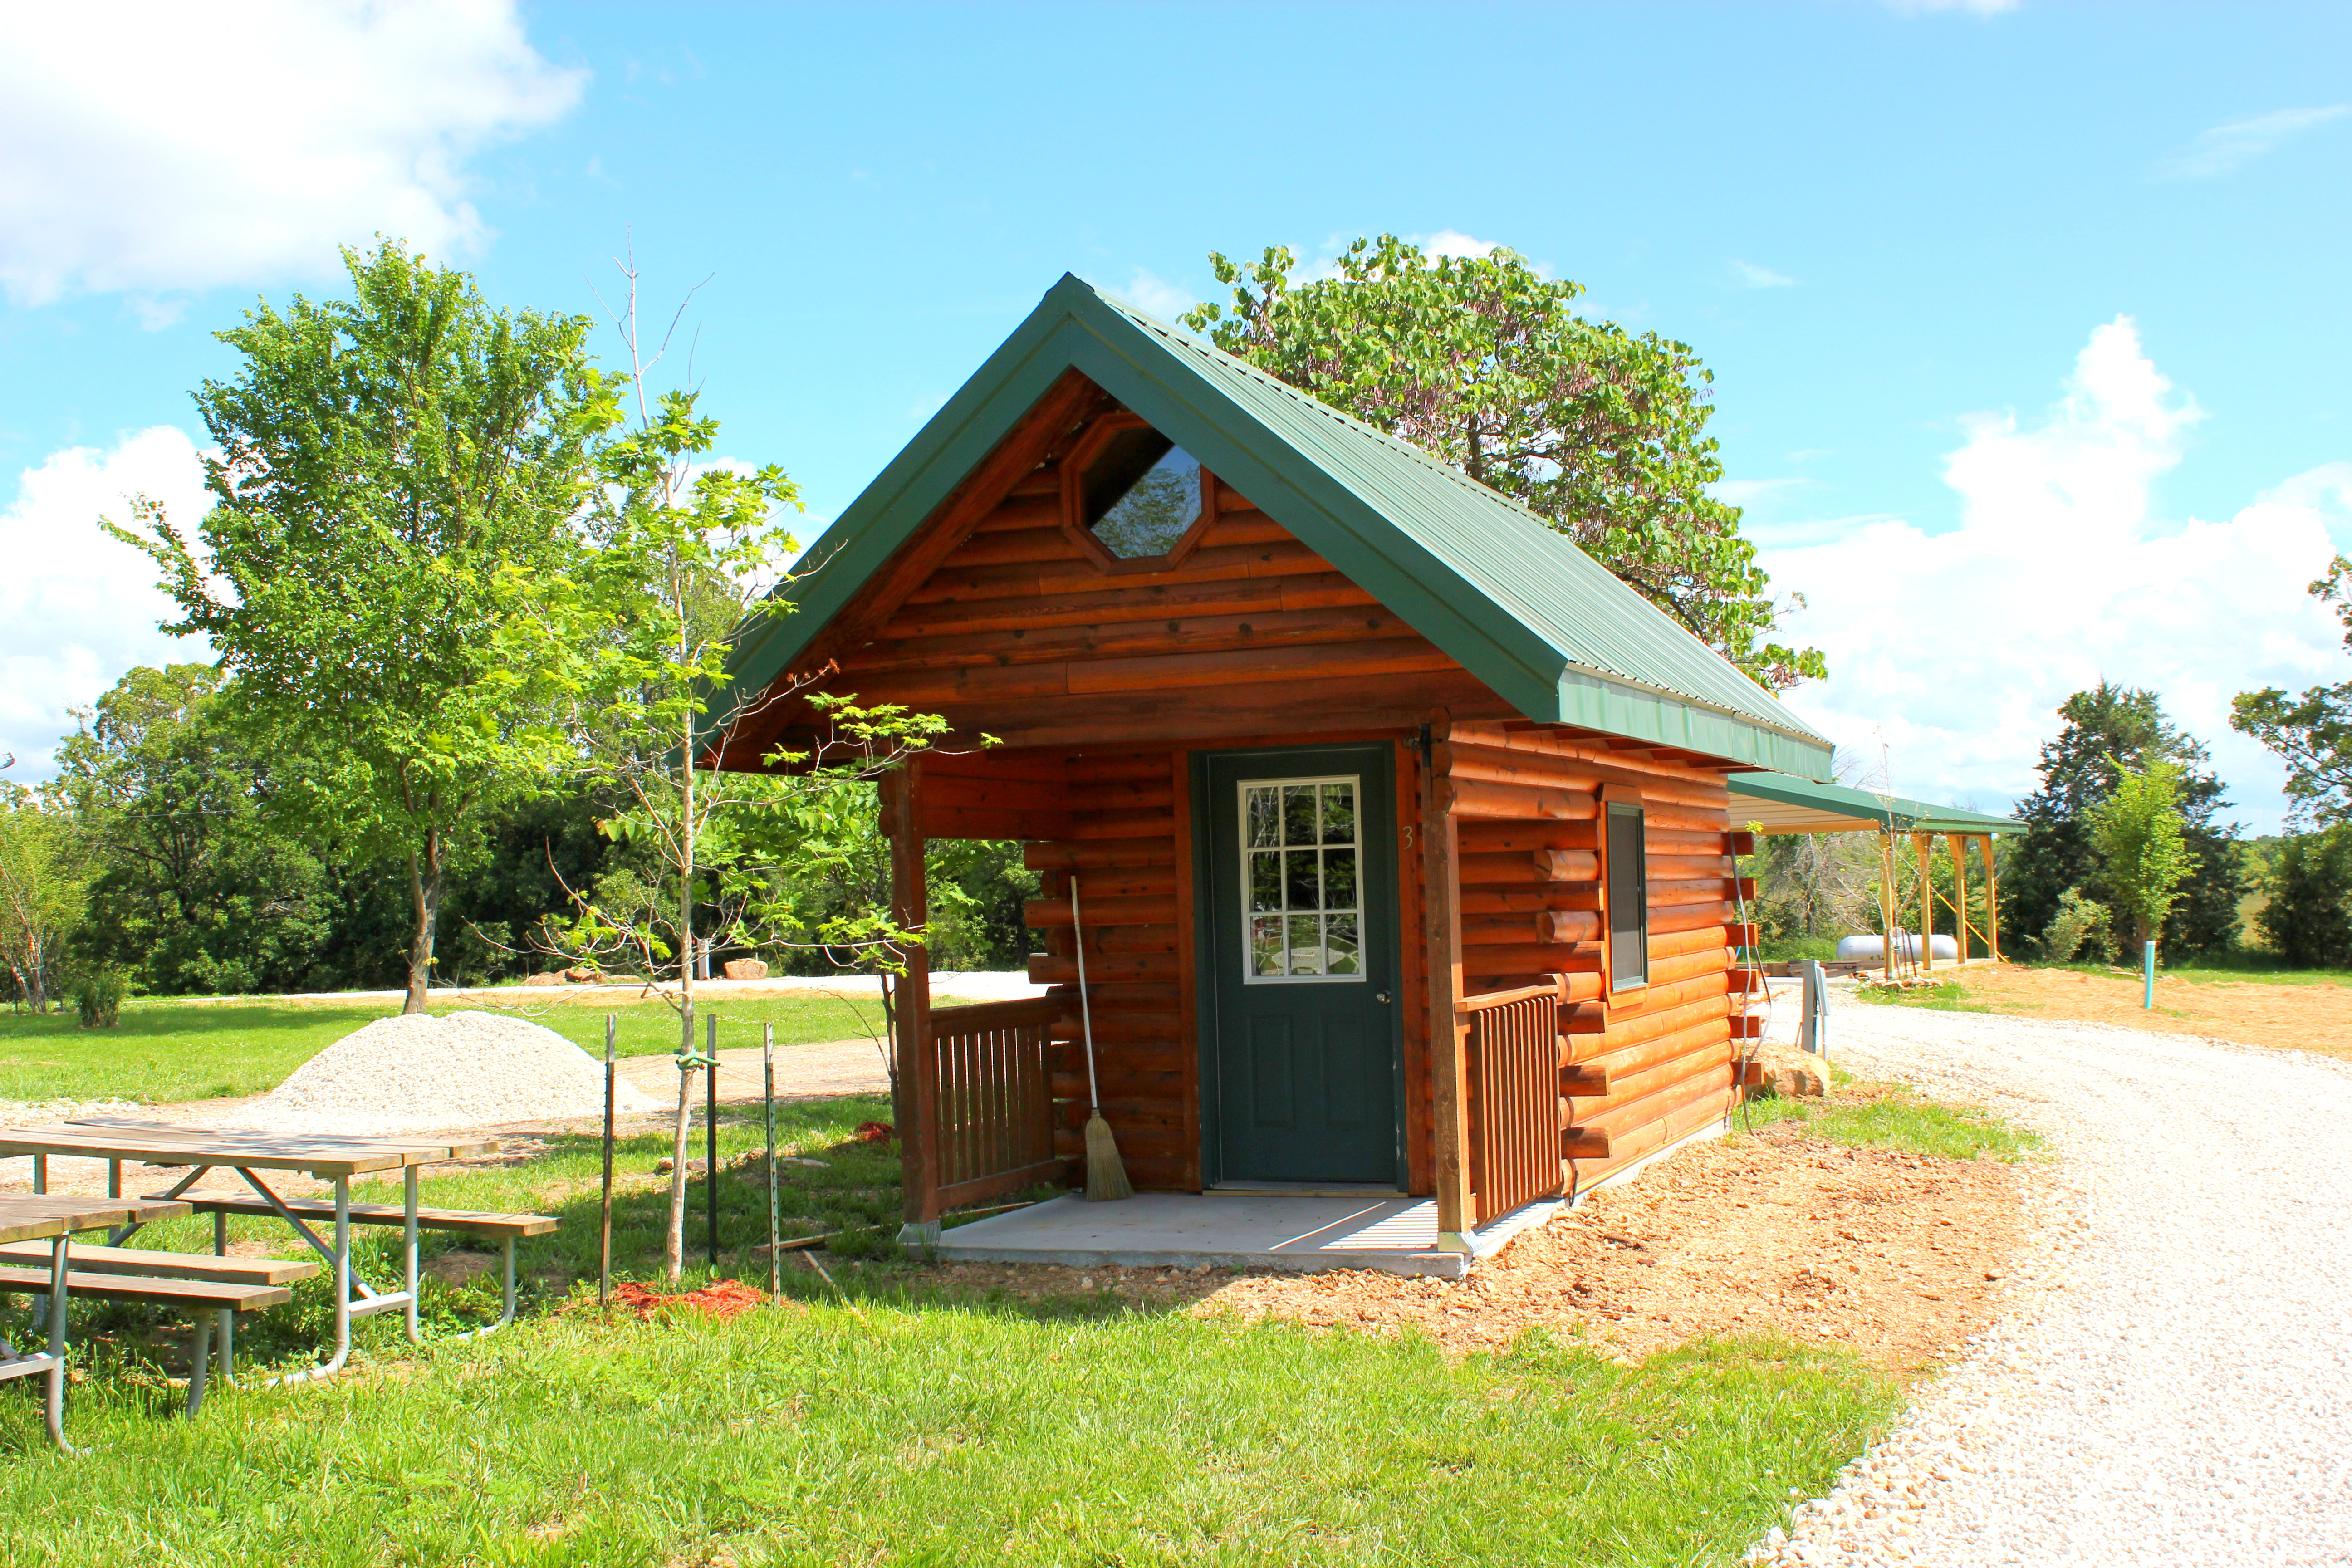 Mini Log Cabin at Deer Thicket Offsite Rental